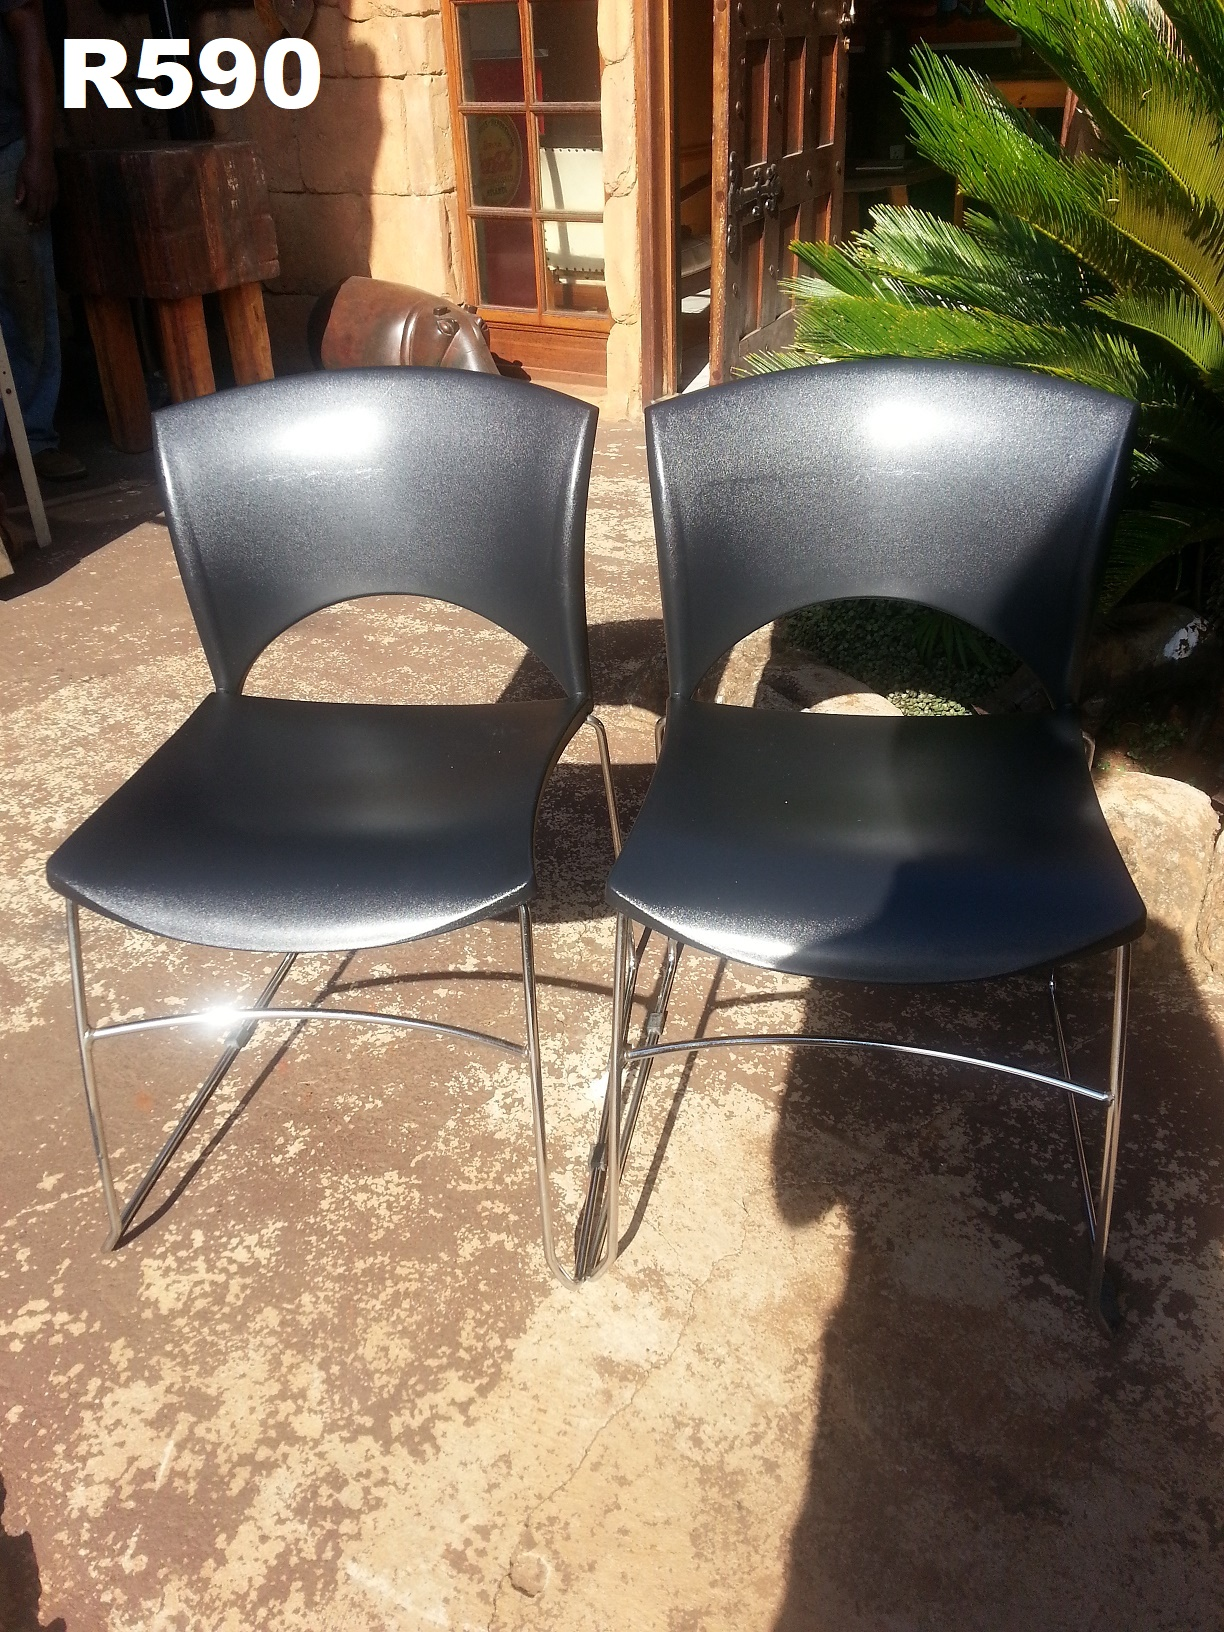 2 x Comfort Chairs